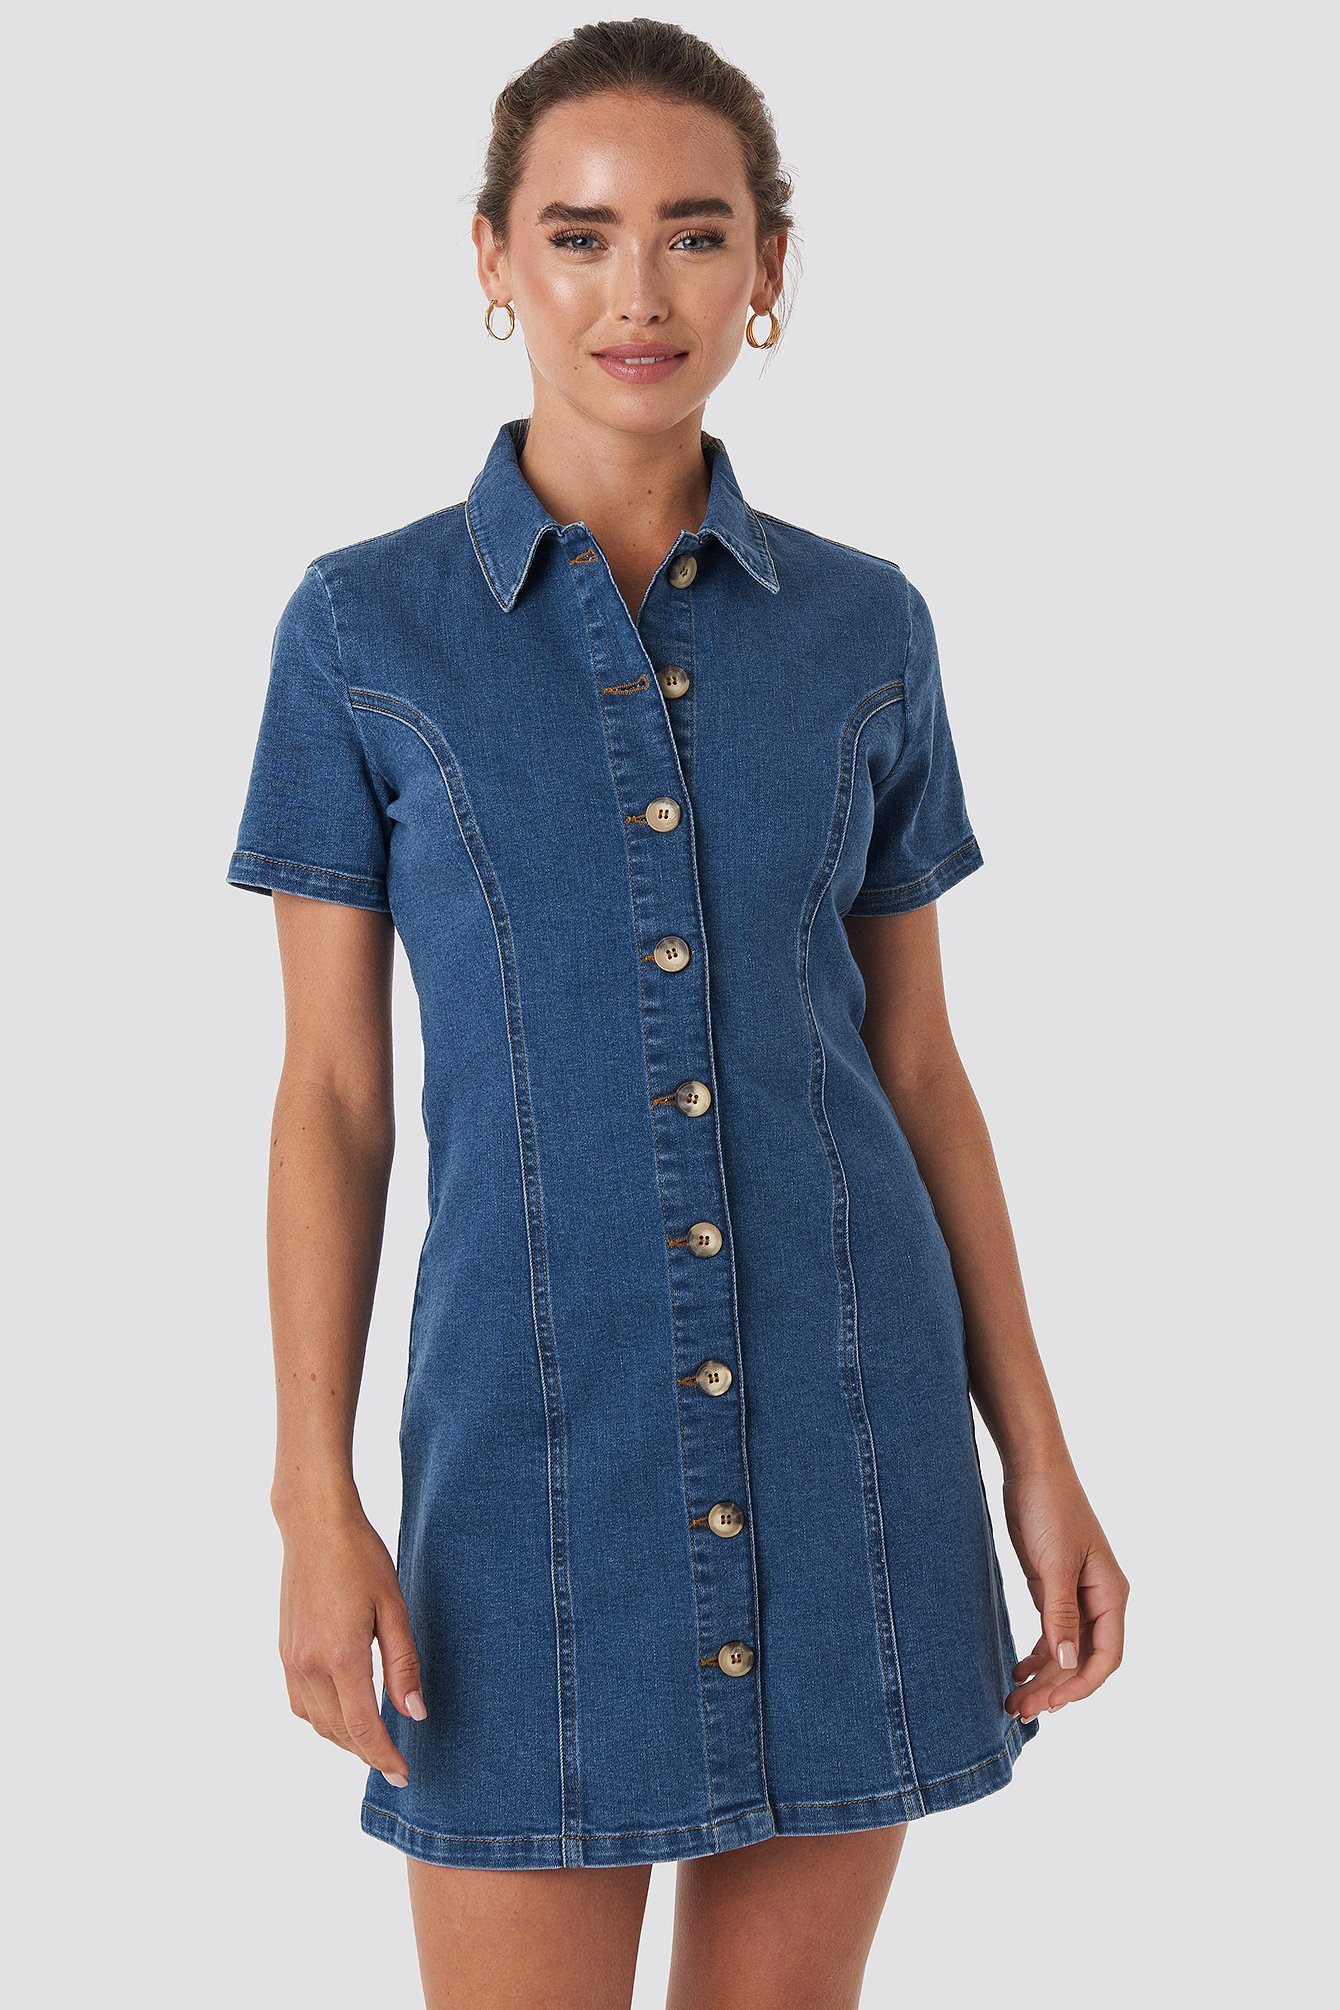 na-kd -  Button Up Denim Mini Dress - Blue